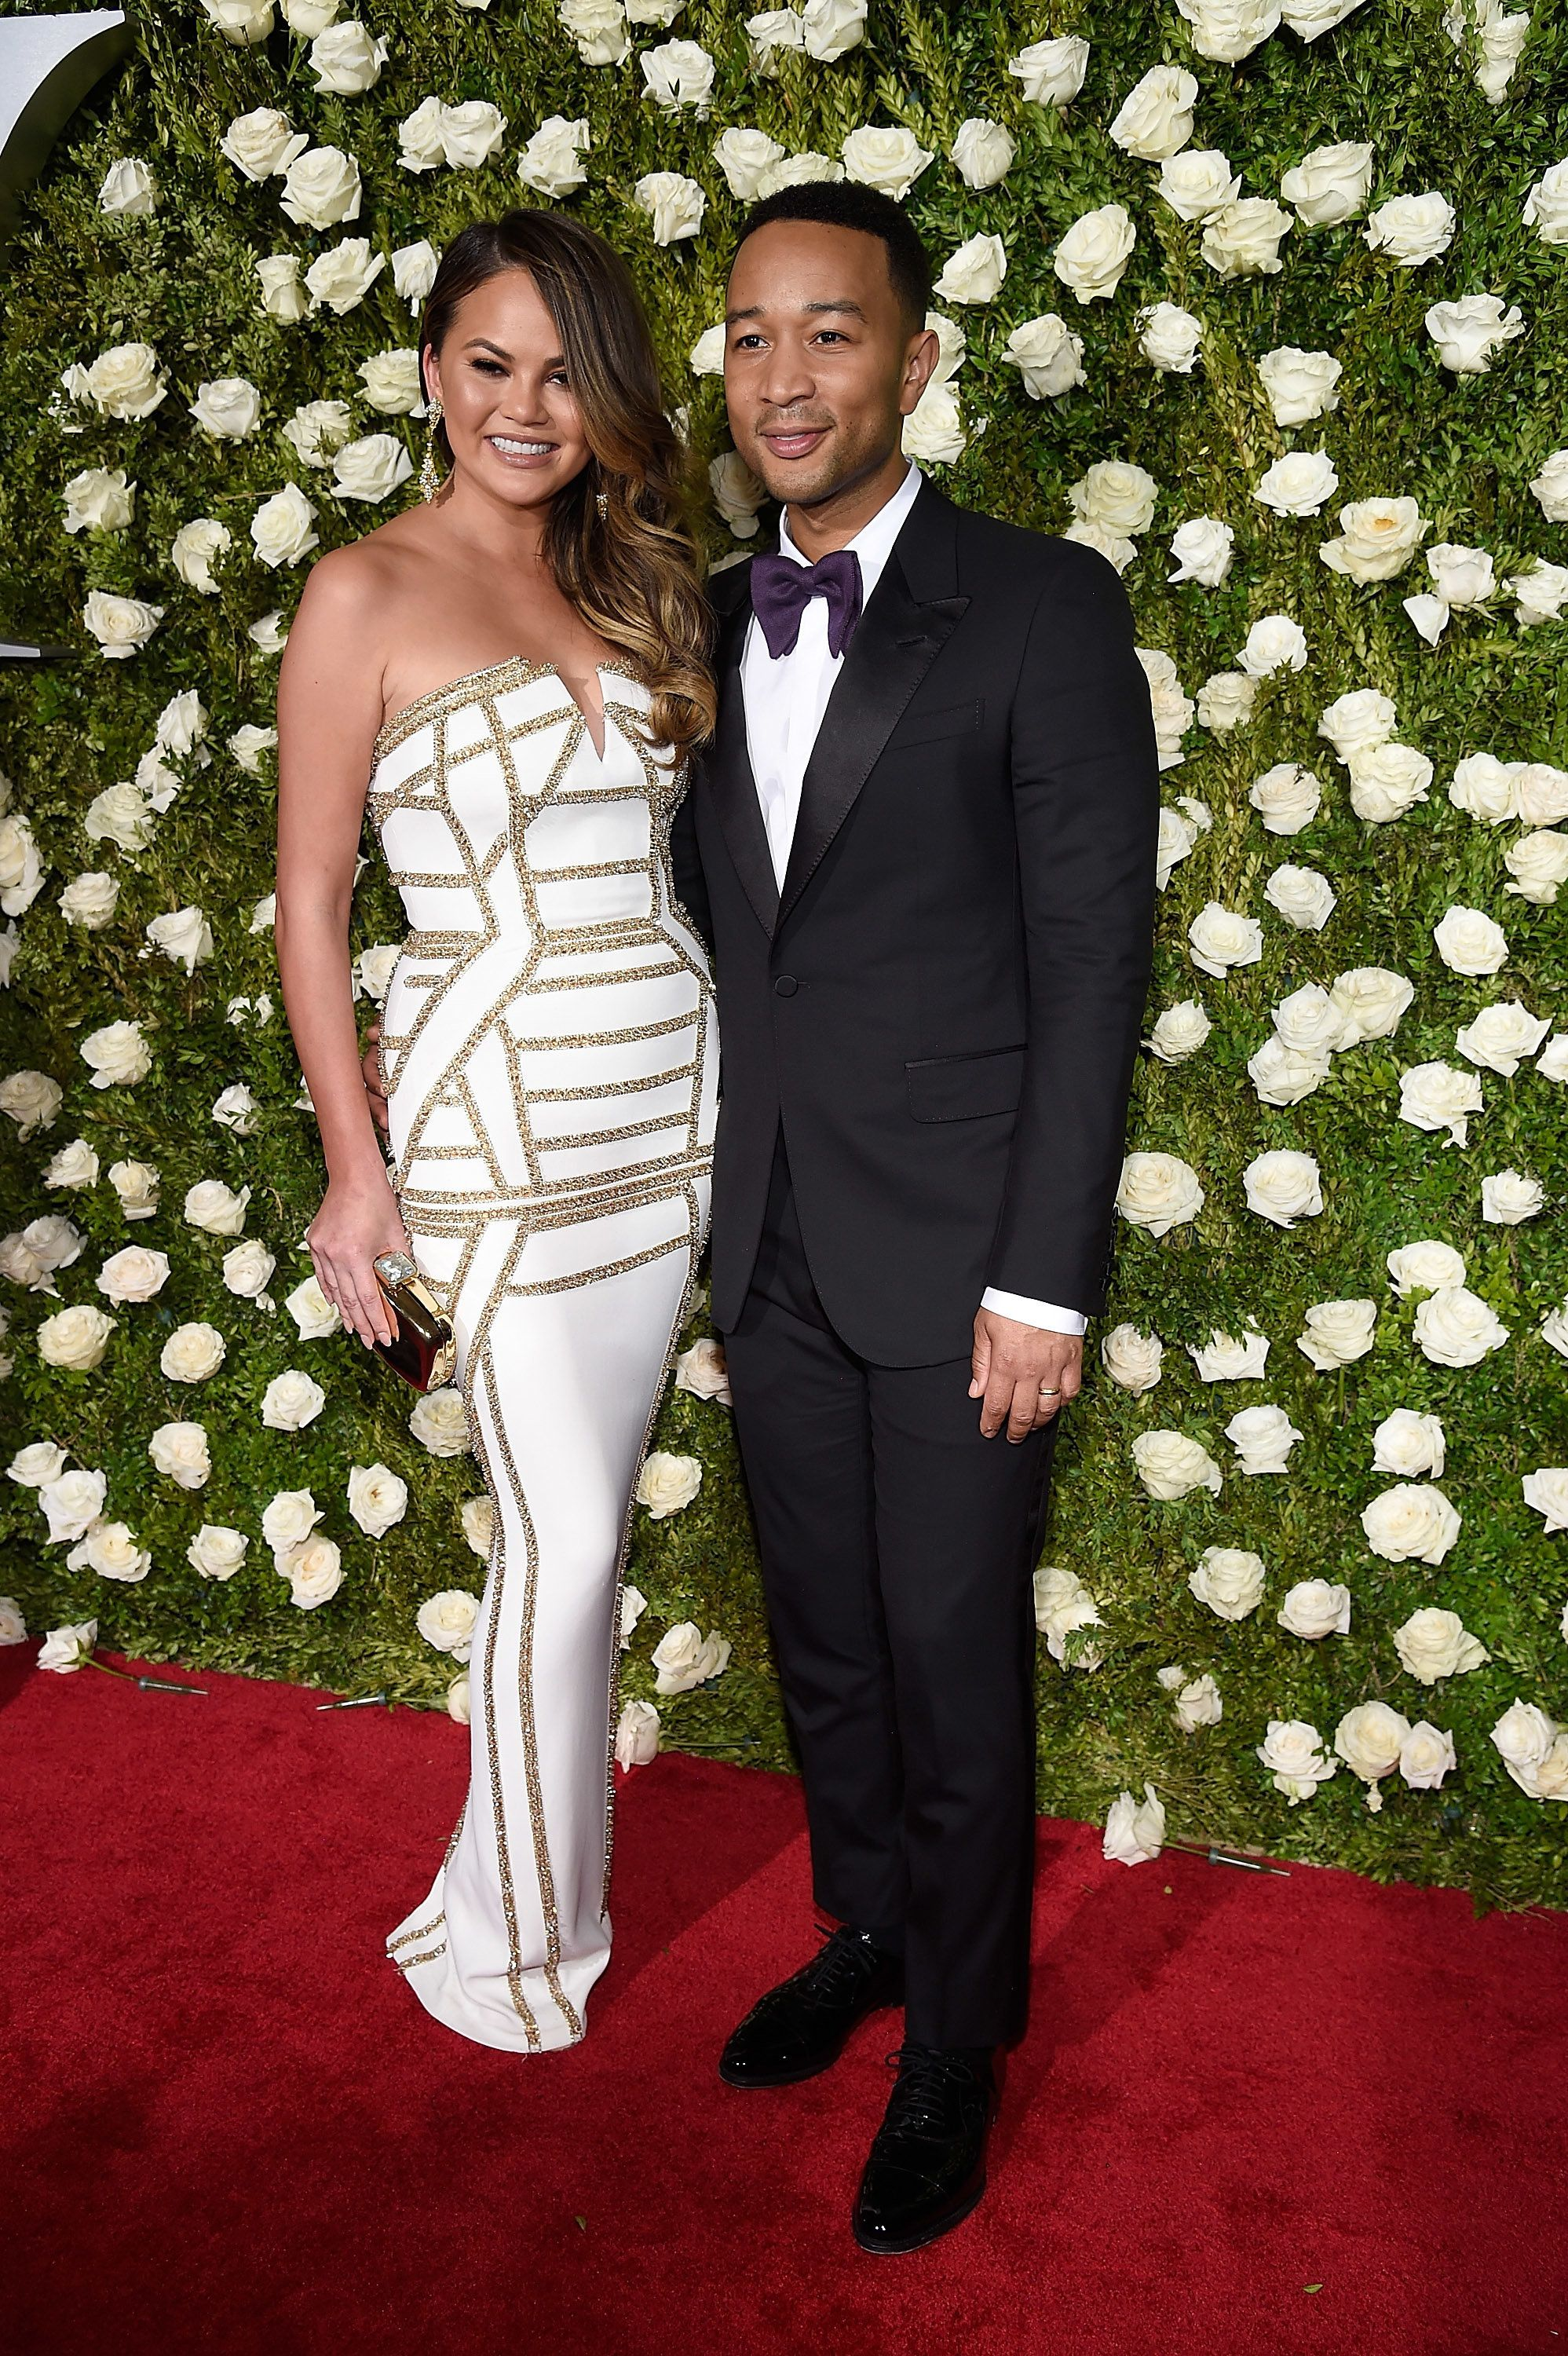 """In an <a href=""""http://www.cosmopolitan.com/entertainment/celebs/a12108637/john-legend-masculinity-interview/"""" target=""""_blank"""">interview with Cosmopolitan</a>, John Legend opened up about going through IVF with Chrissy Teigen before having their daughter, Luna."""